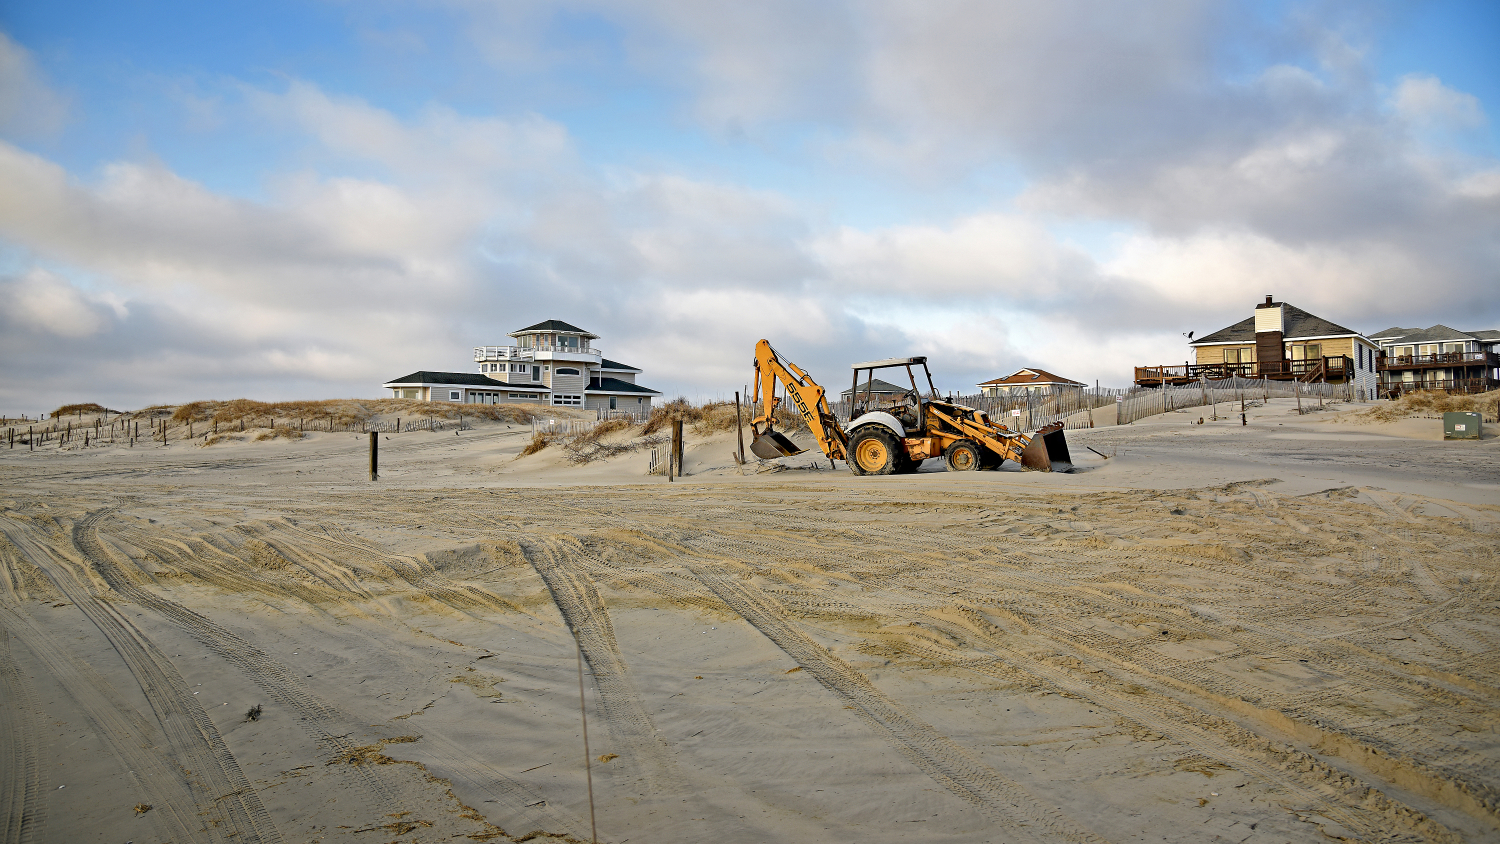 Beach Construction - Sustainable Tourism - Parks Recreation and Tourism Management NC State